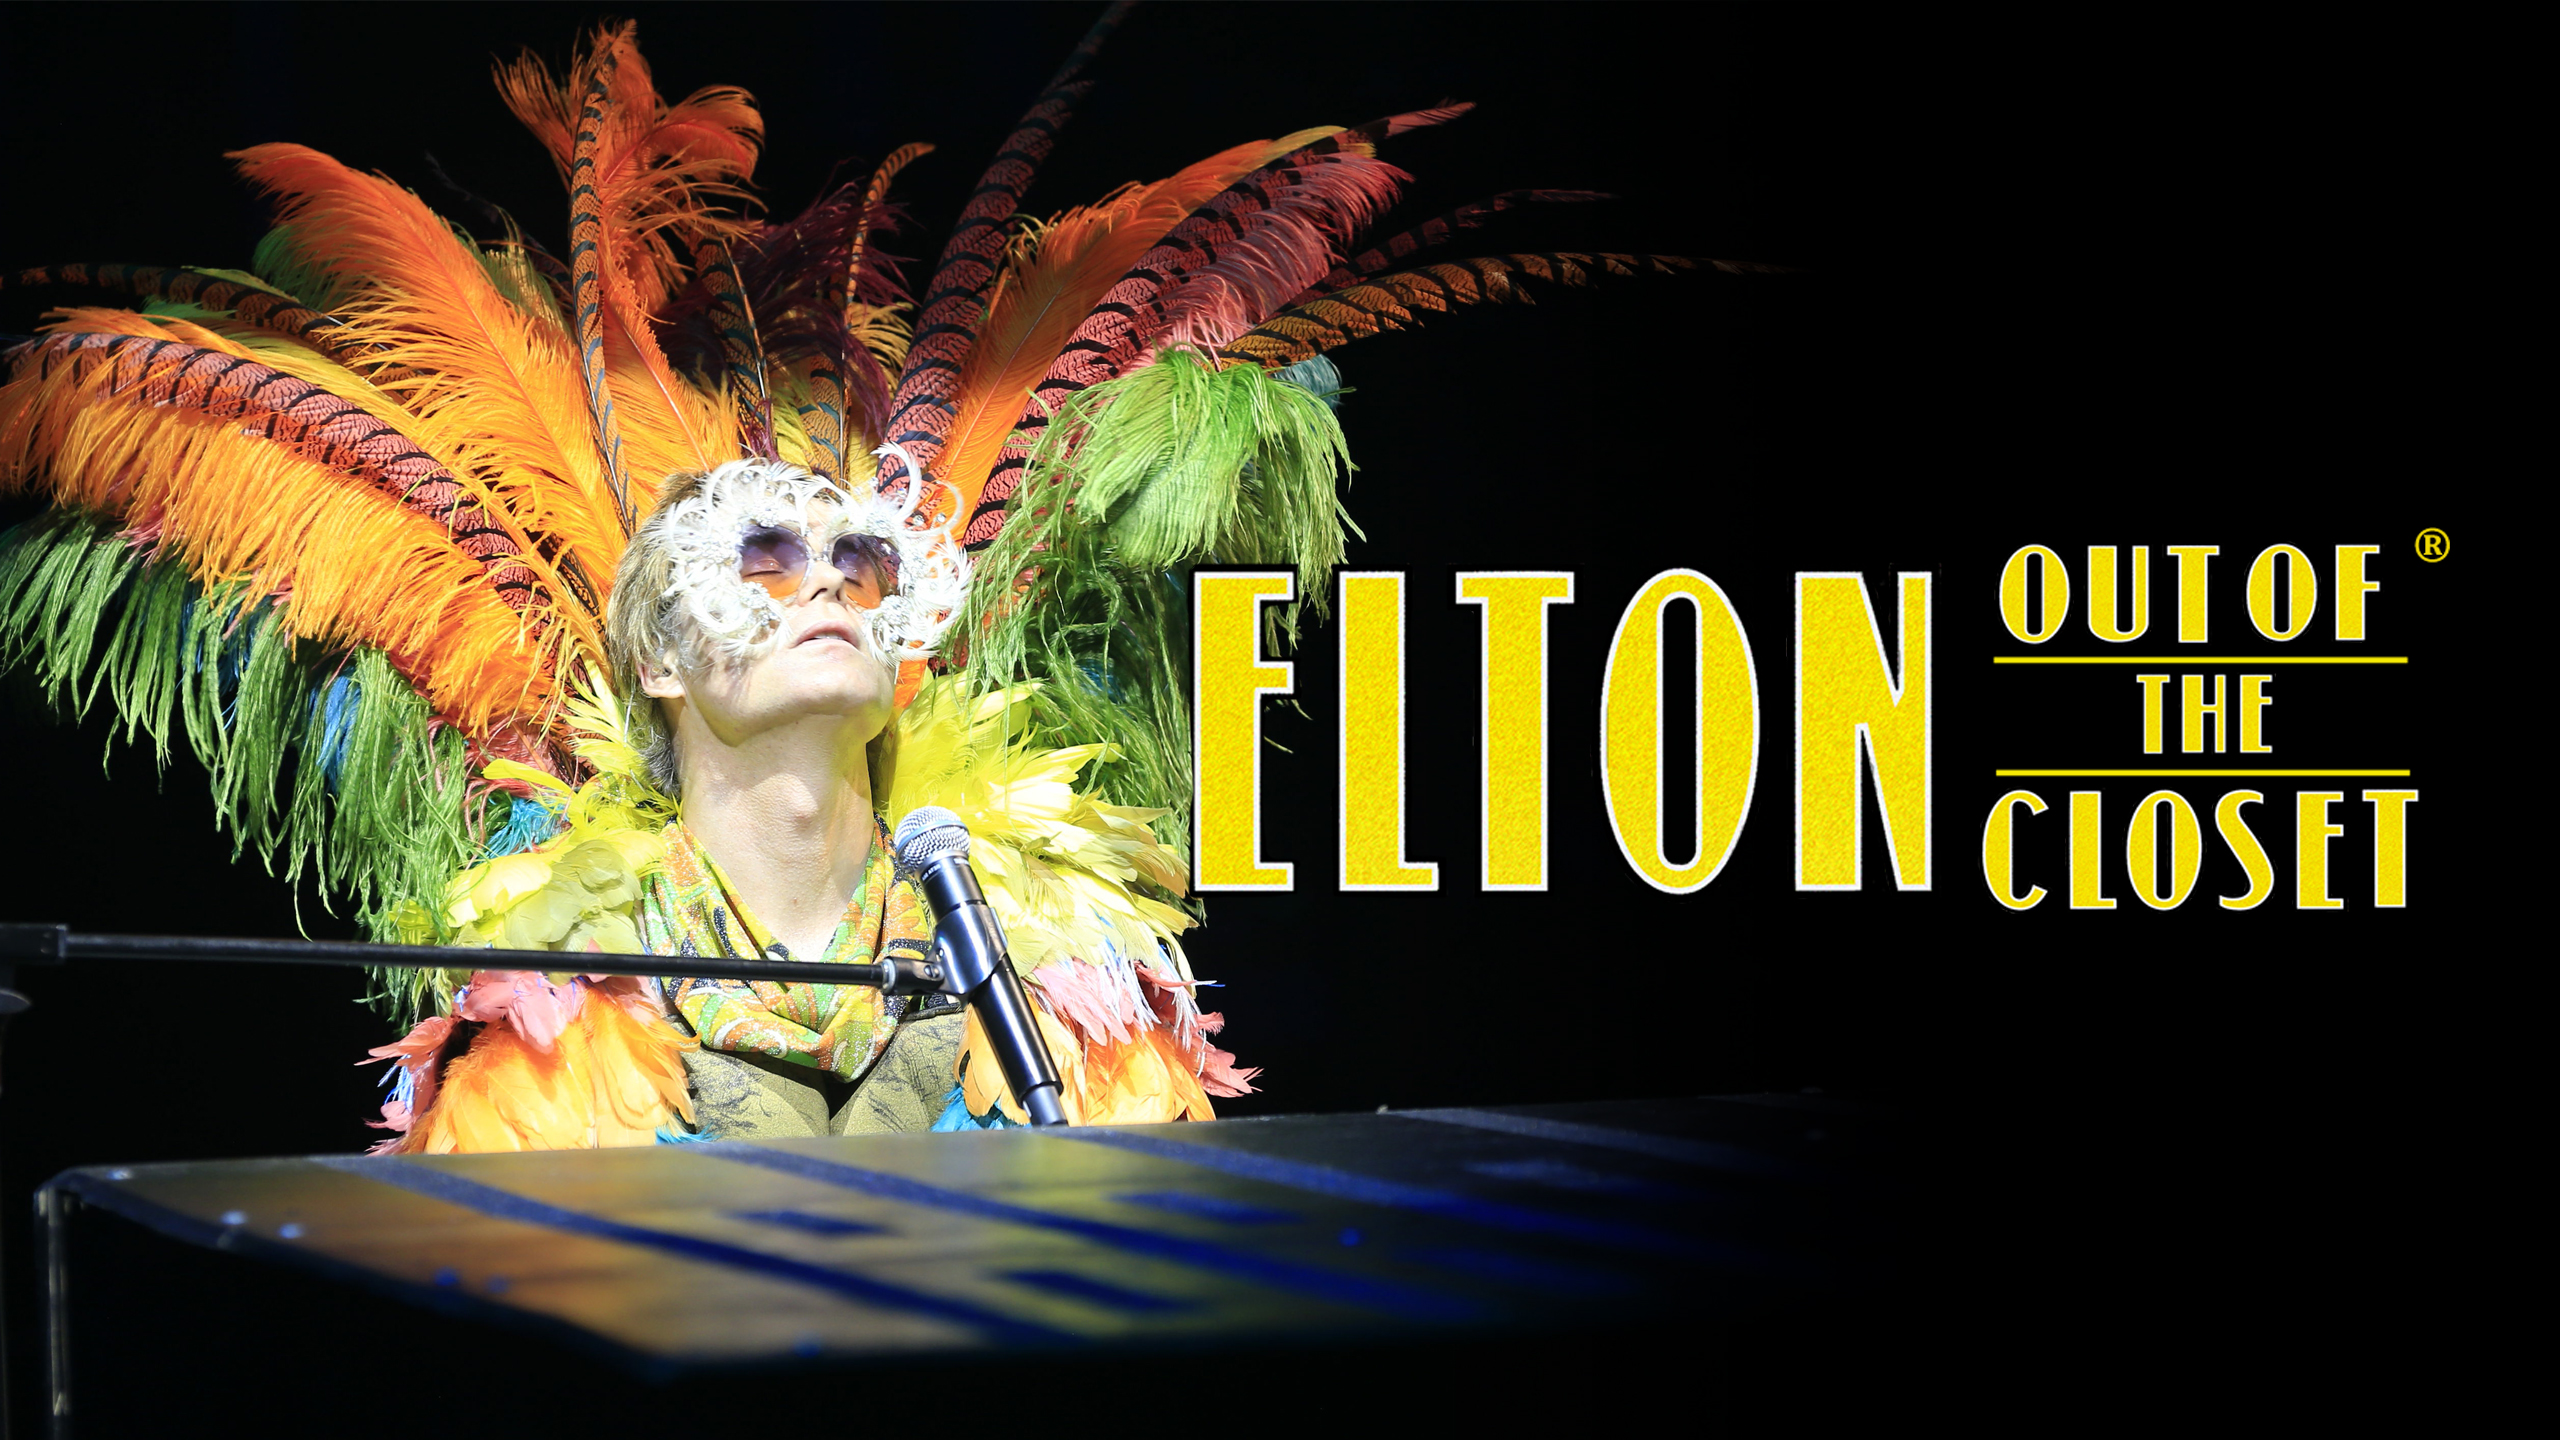 Elton Out Of The Closet®